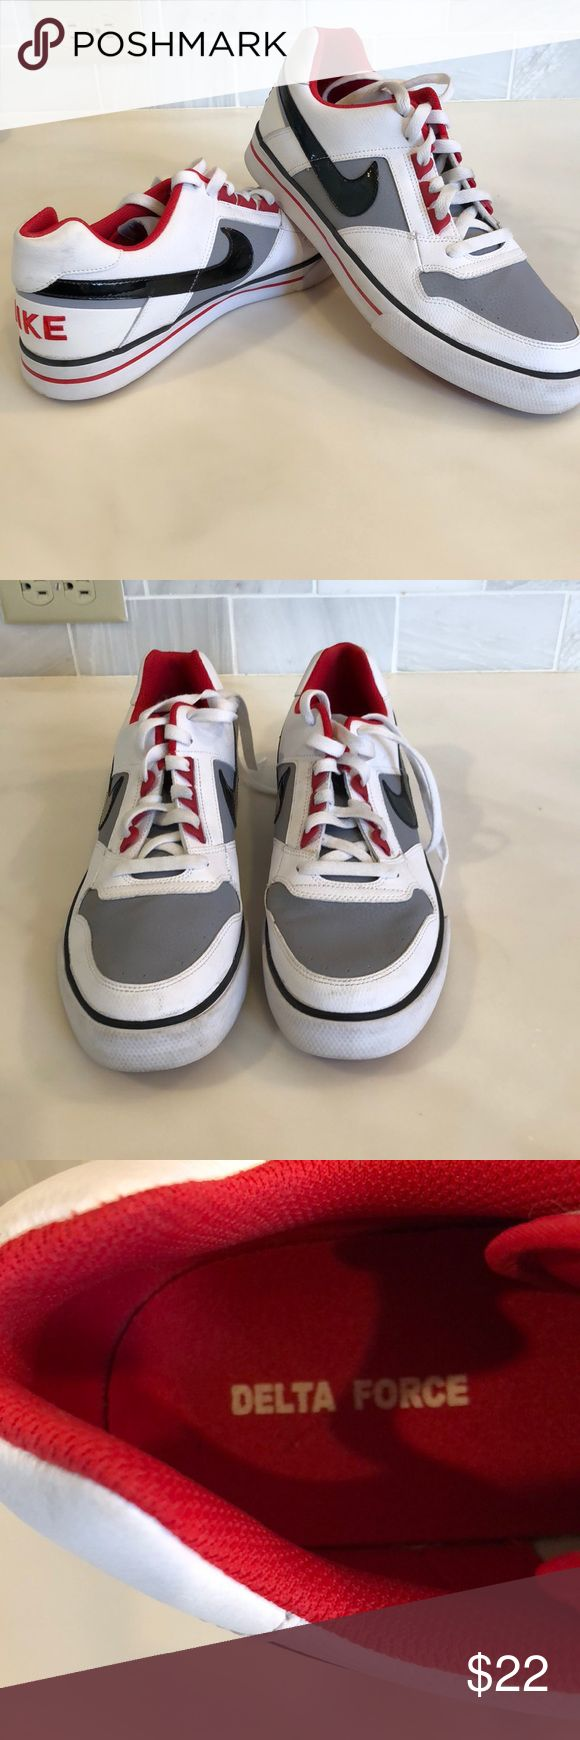 Men's Nike Tennis shoes Men's Nike Delta Force tennis shoes.  Great condition.  Worn once or twice.  Clean and shows very little wear.  There is one scuff mark on rubber you can see in last picture.  Non-smoking home. Nike Shoes Sneakers